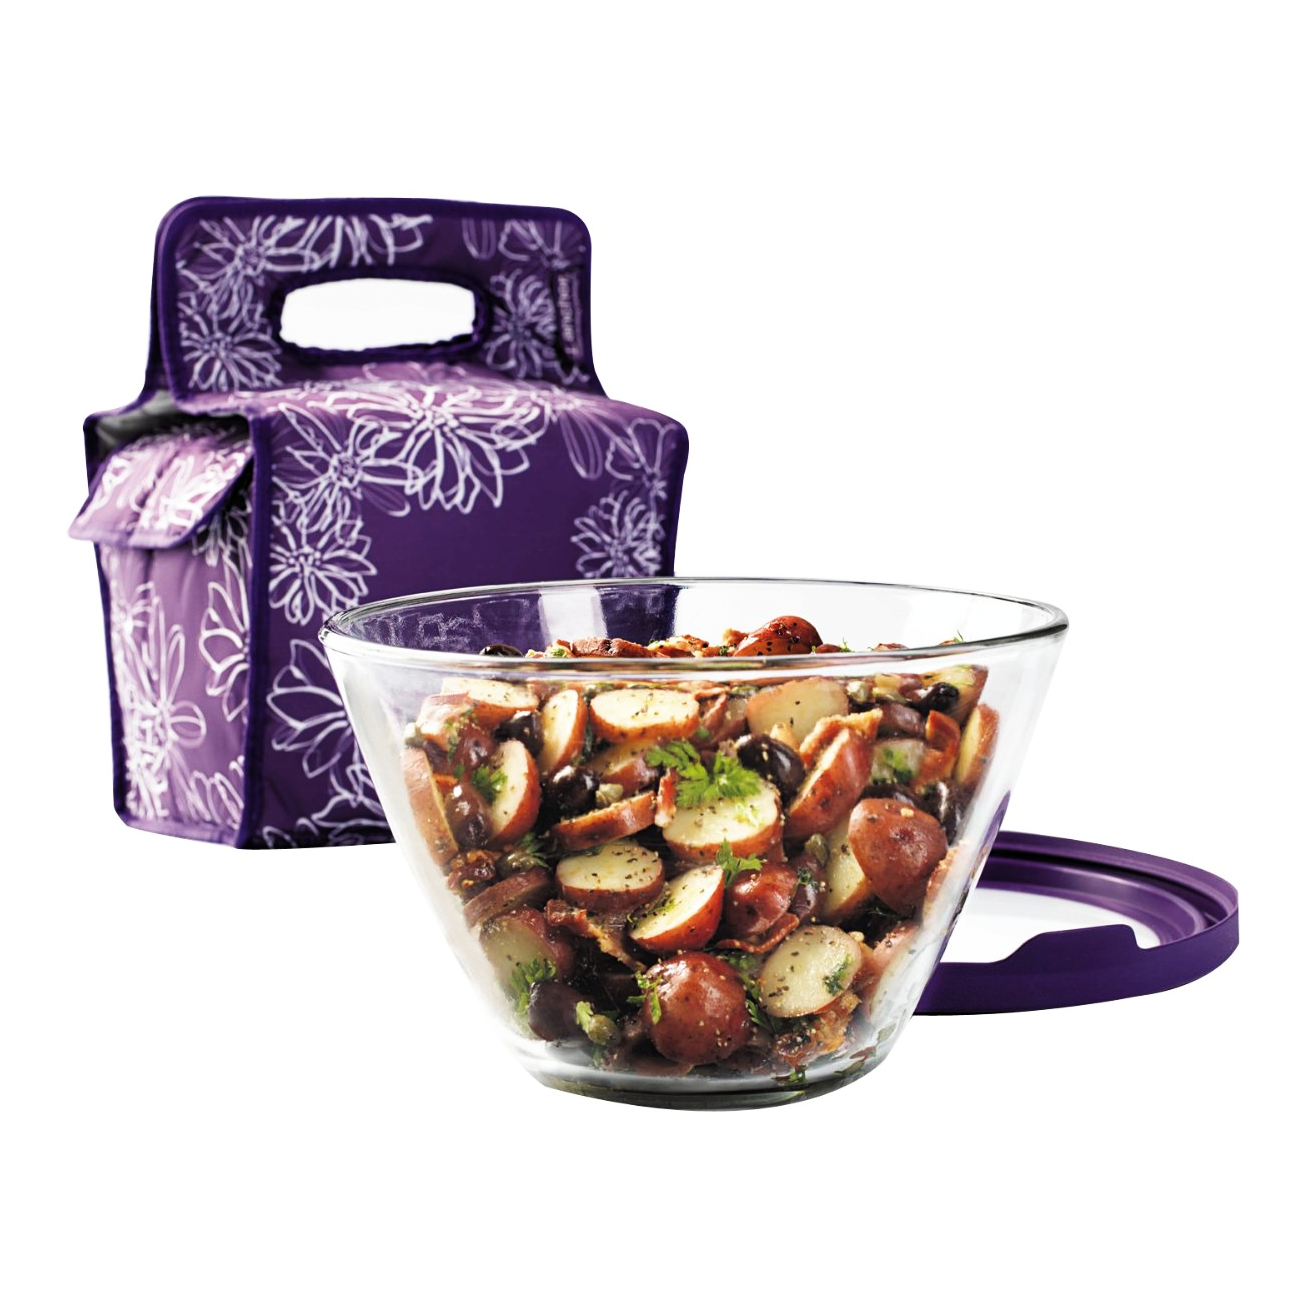 Anchor Hocking 4 Quart Glass Mixing and Serving Bowl with Eggplant Lid and Tote Set